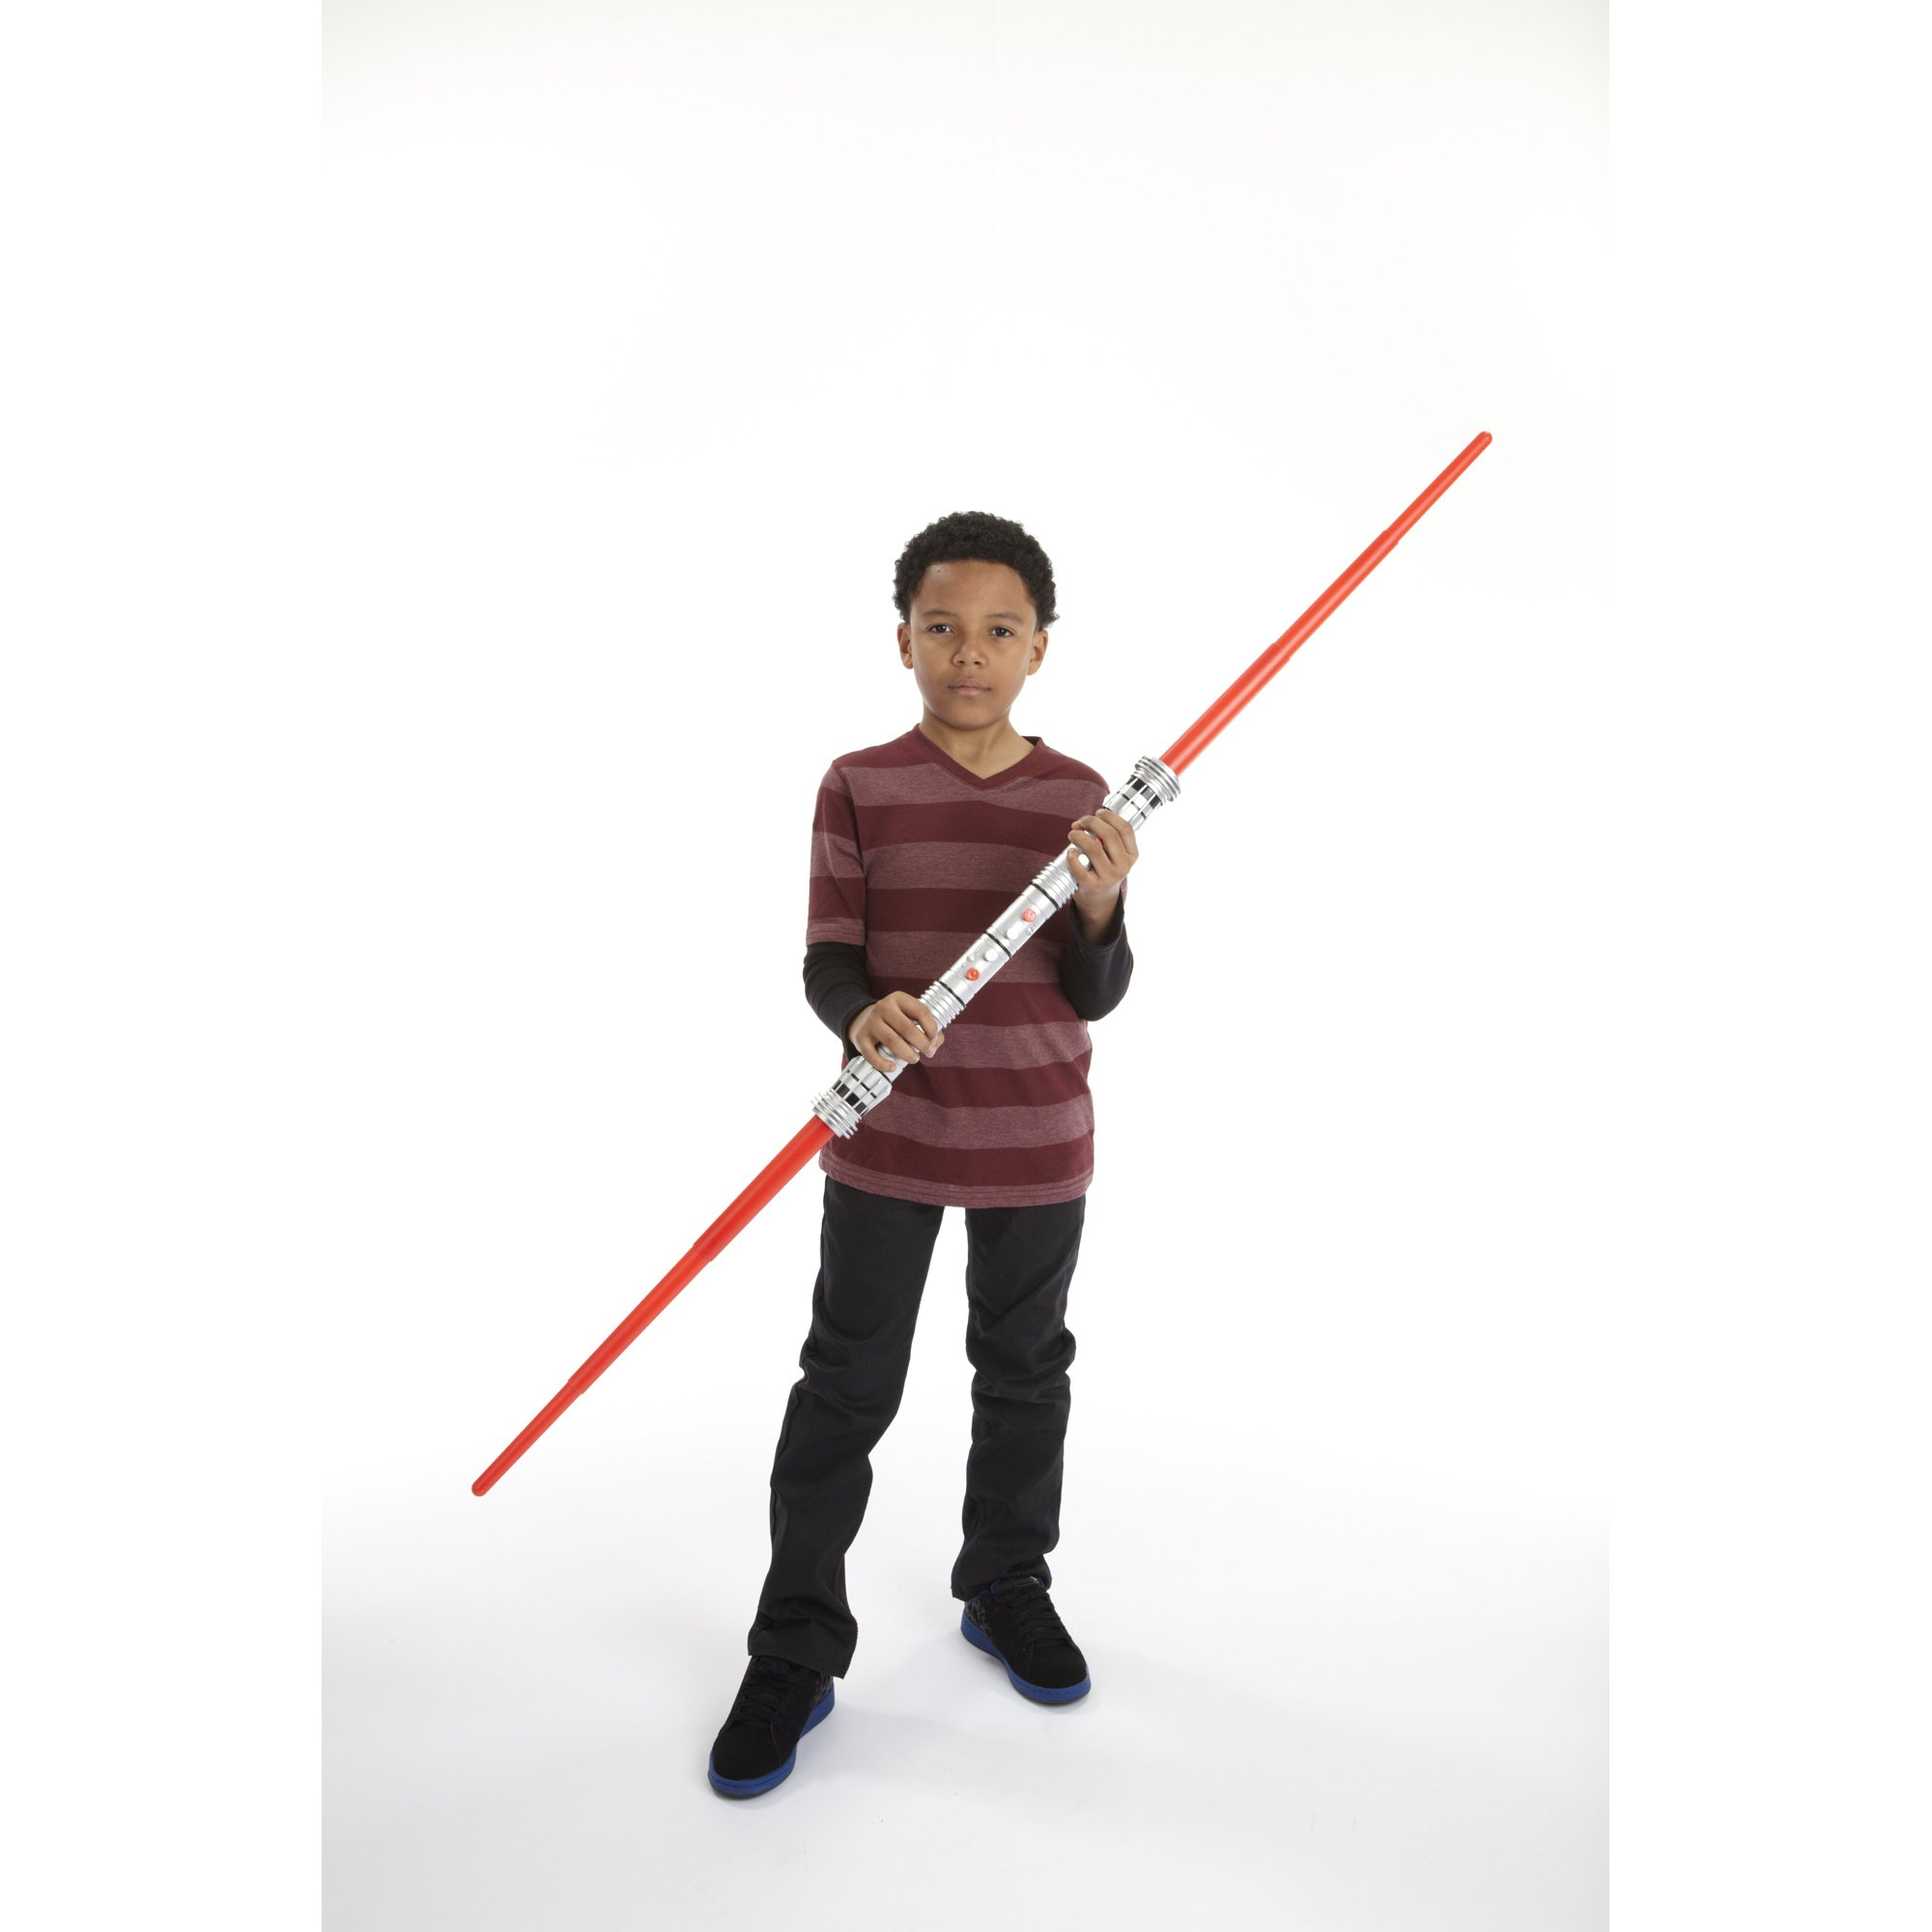 Star Wars Darth Maul Double-Bladed Lightsaber Toy by Star Wars (Image #7)